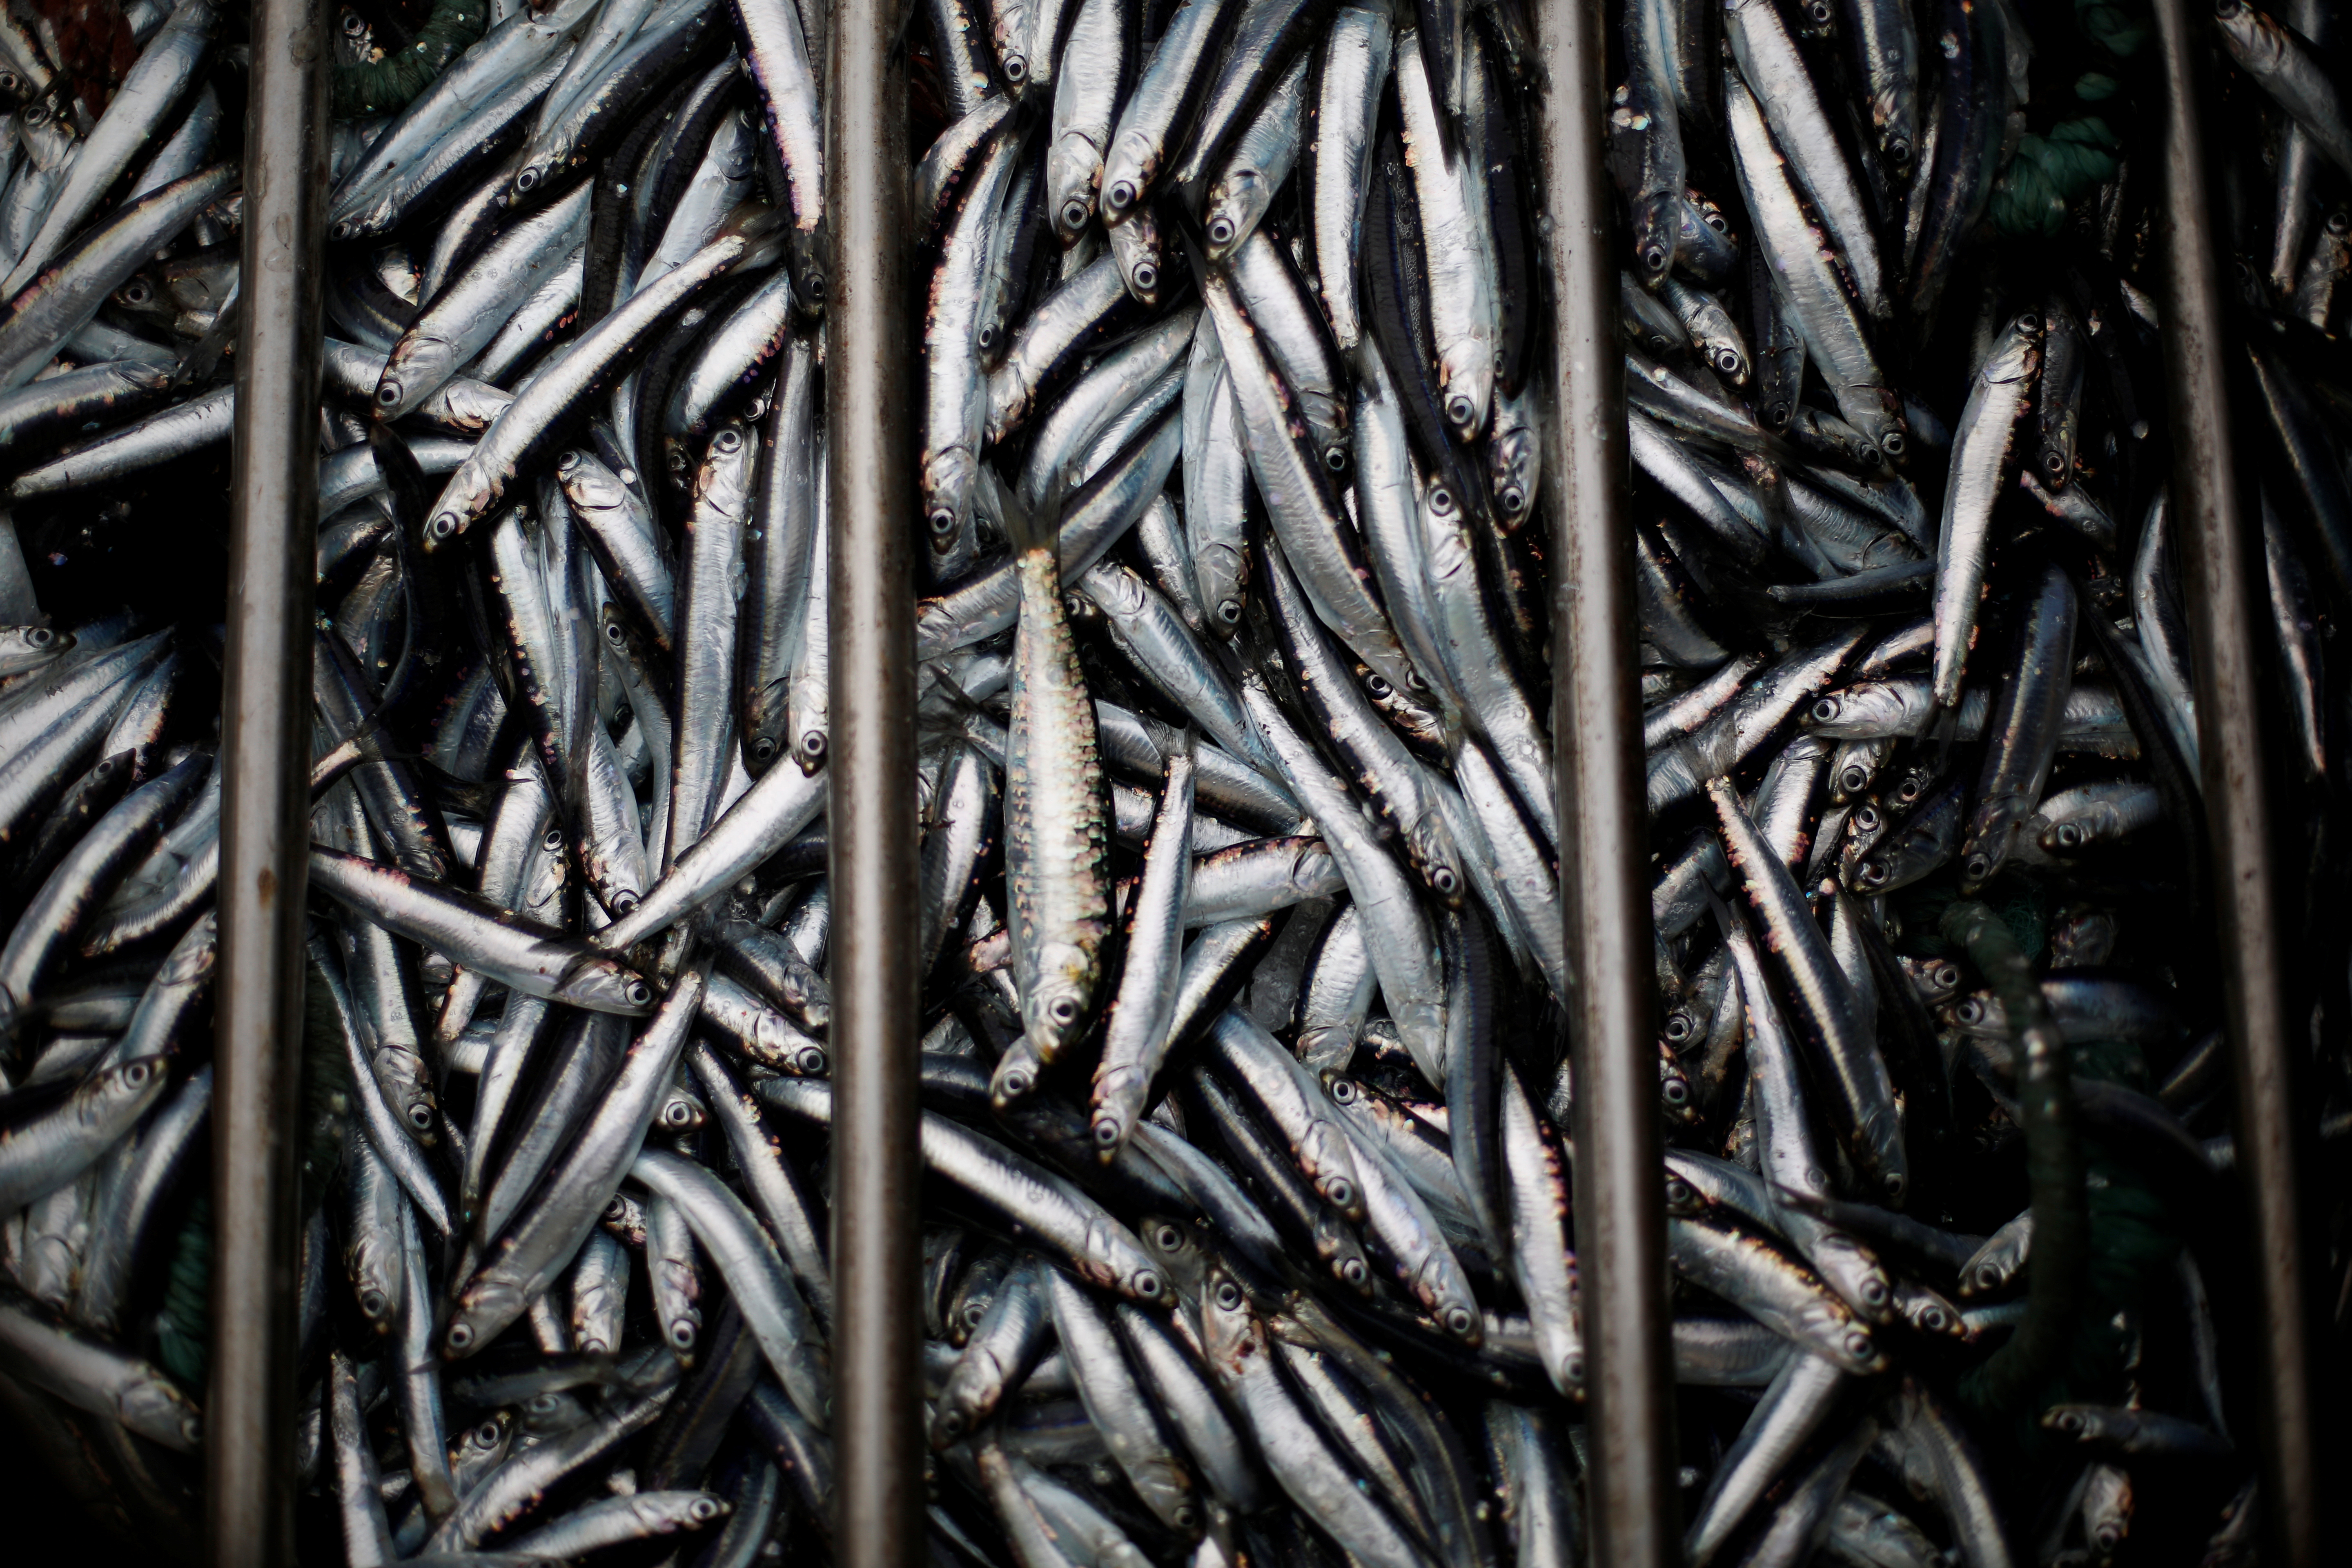 Anchovies are seen after being removed from a boat at the port of Matosinhos in Portugal, May 29, 2018.